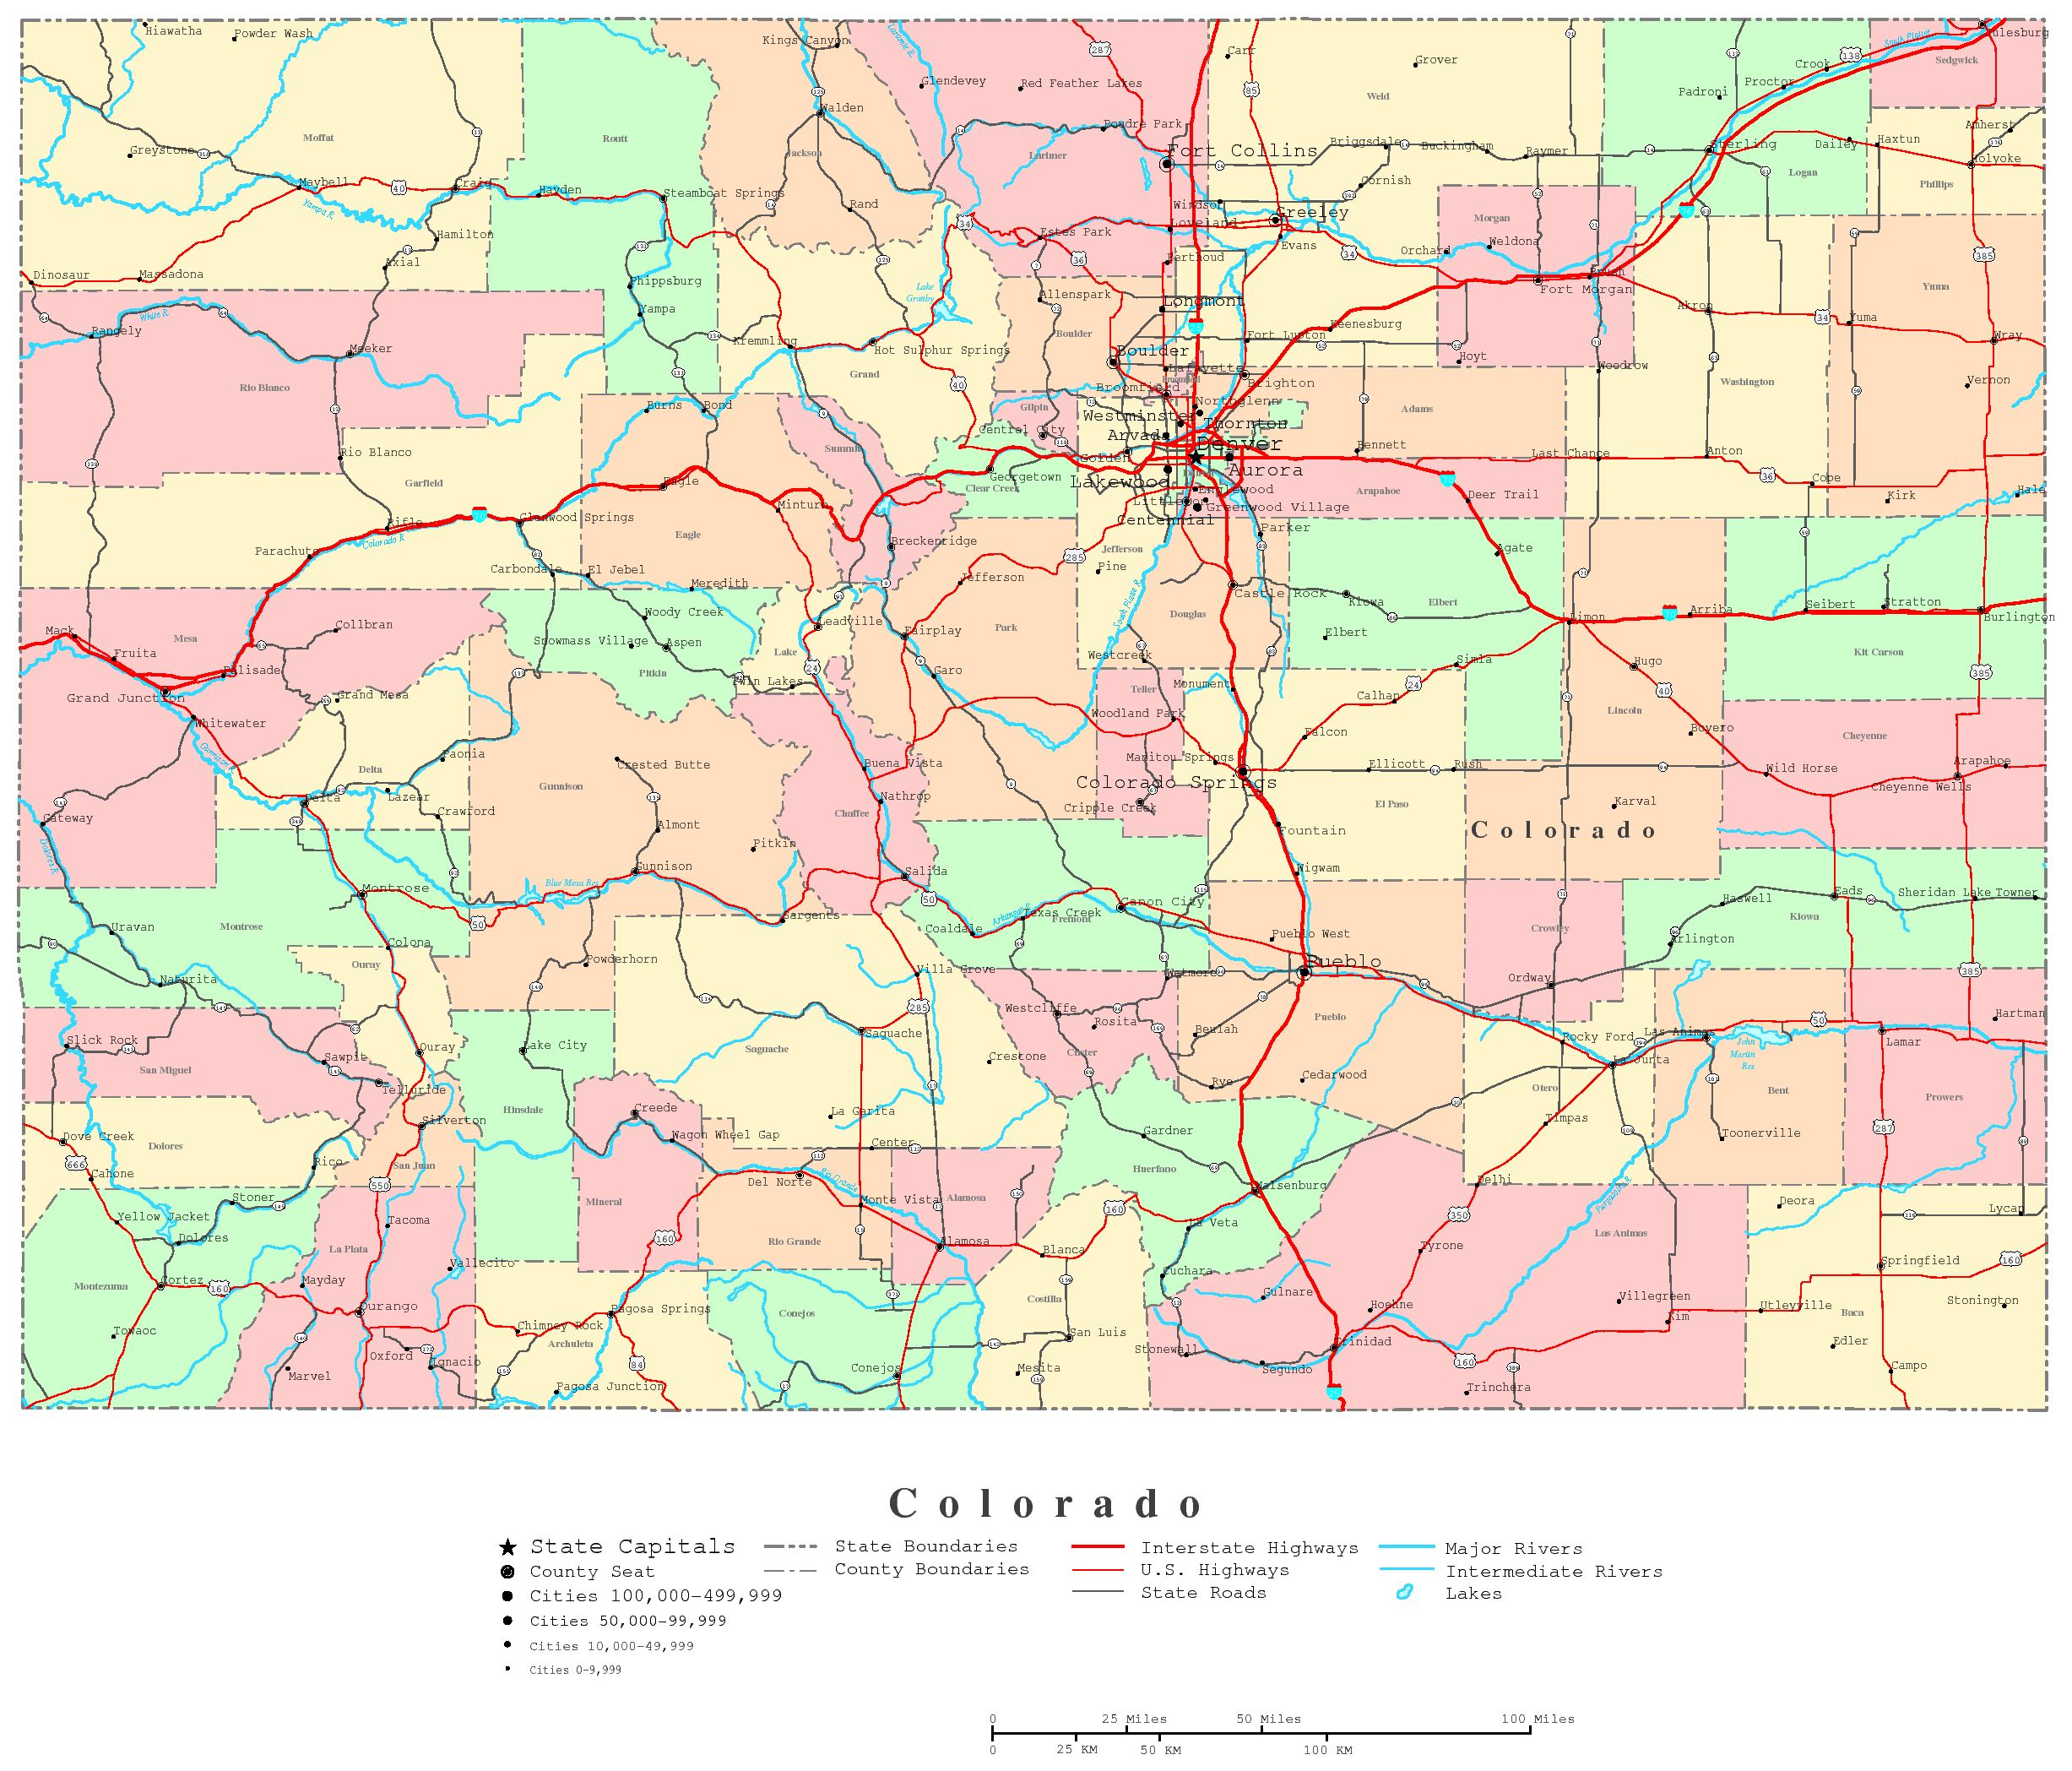 Colorado Printable Map - Colorado road map